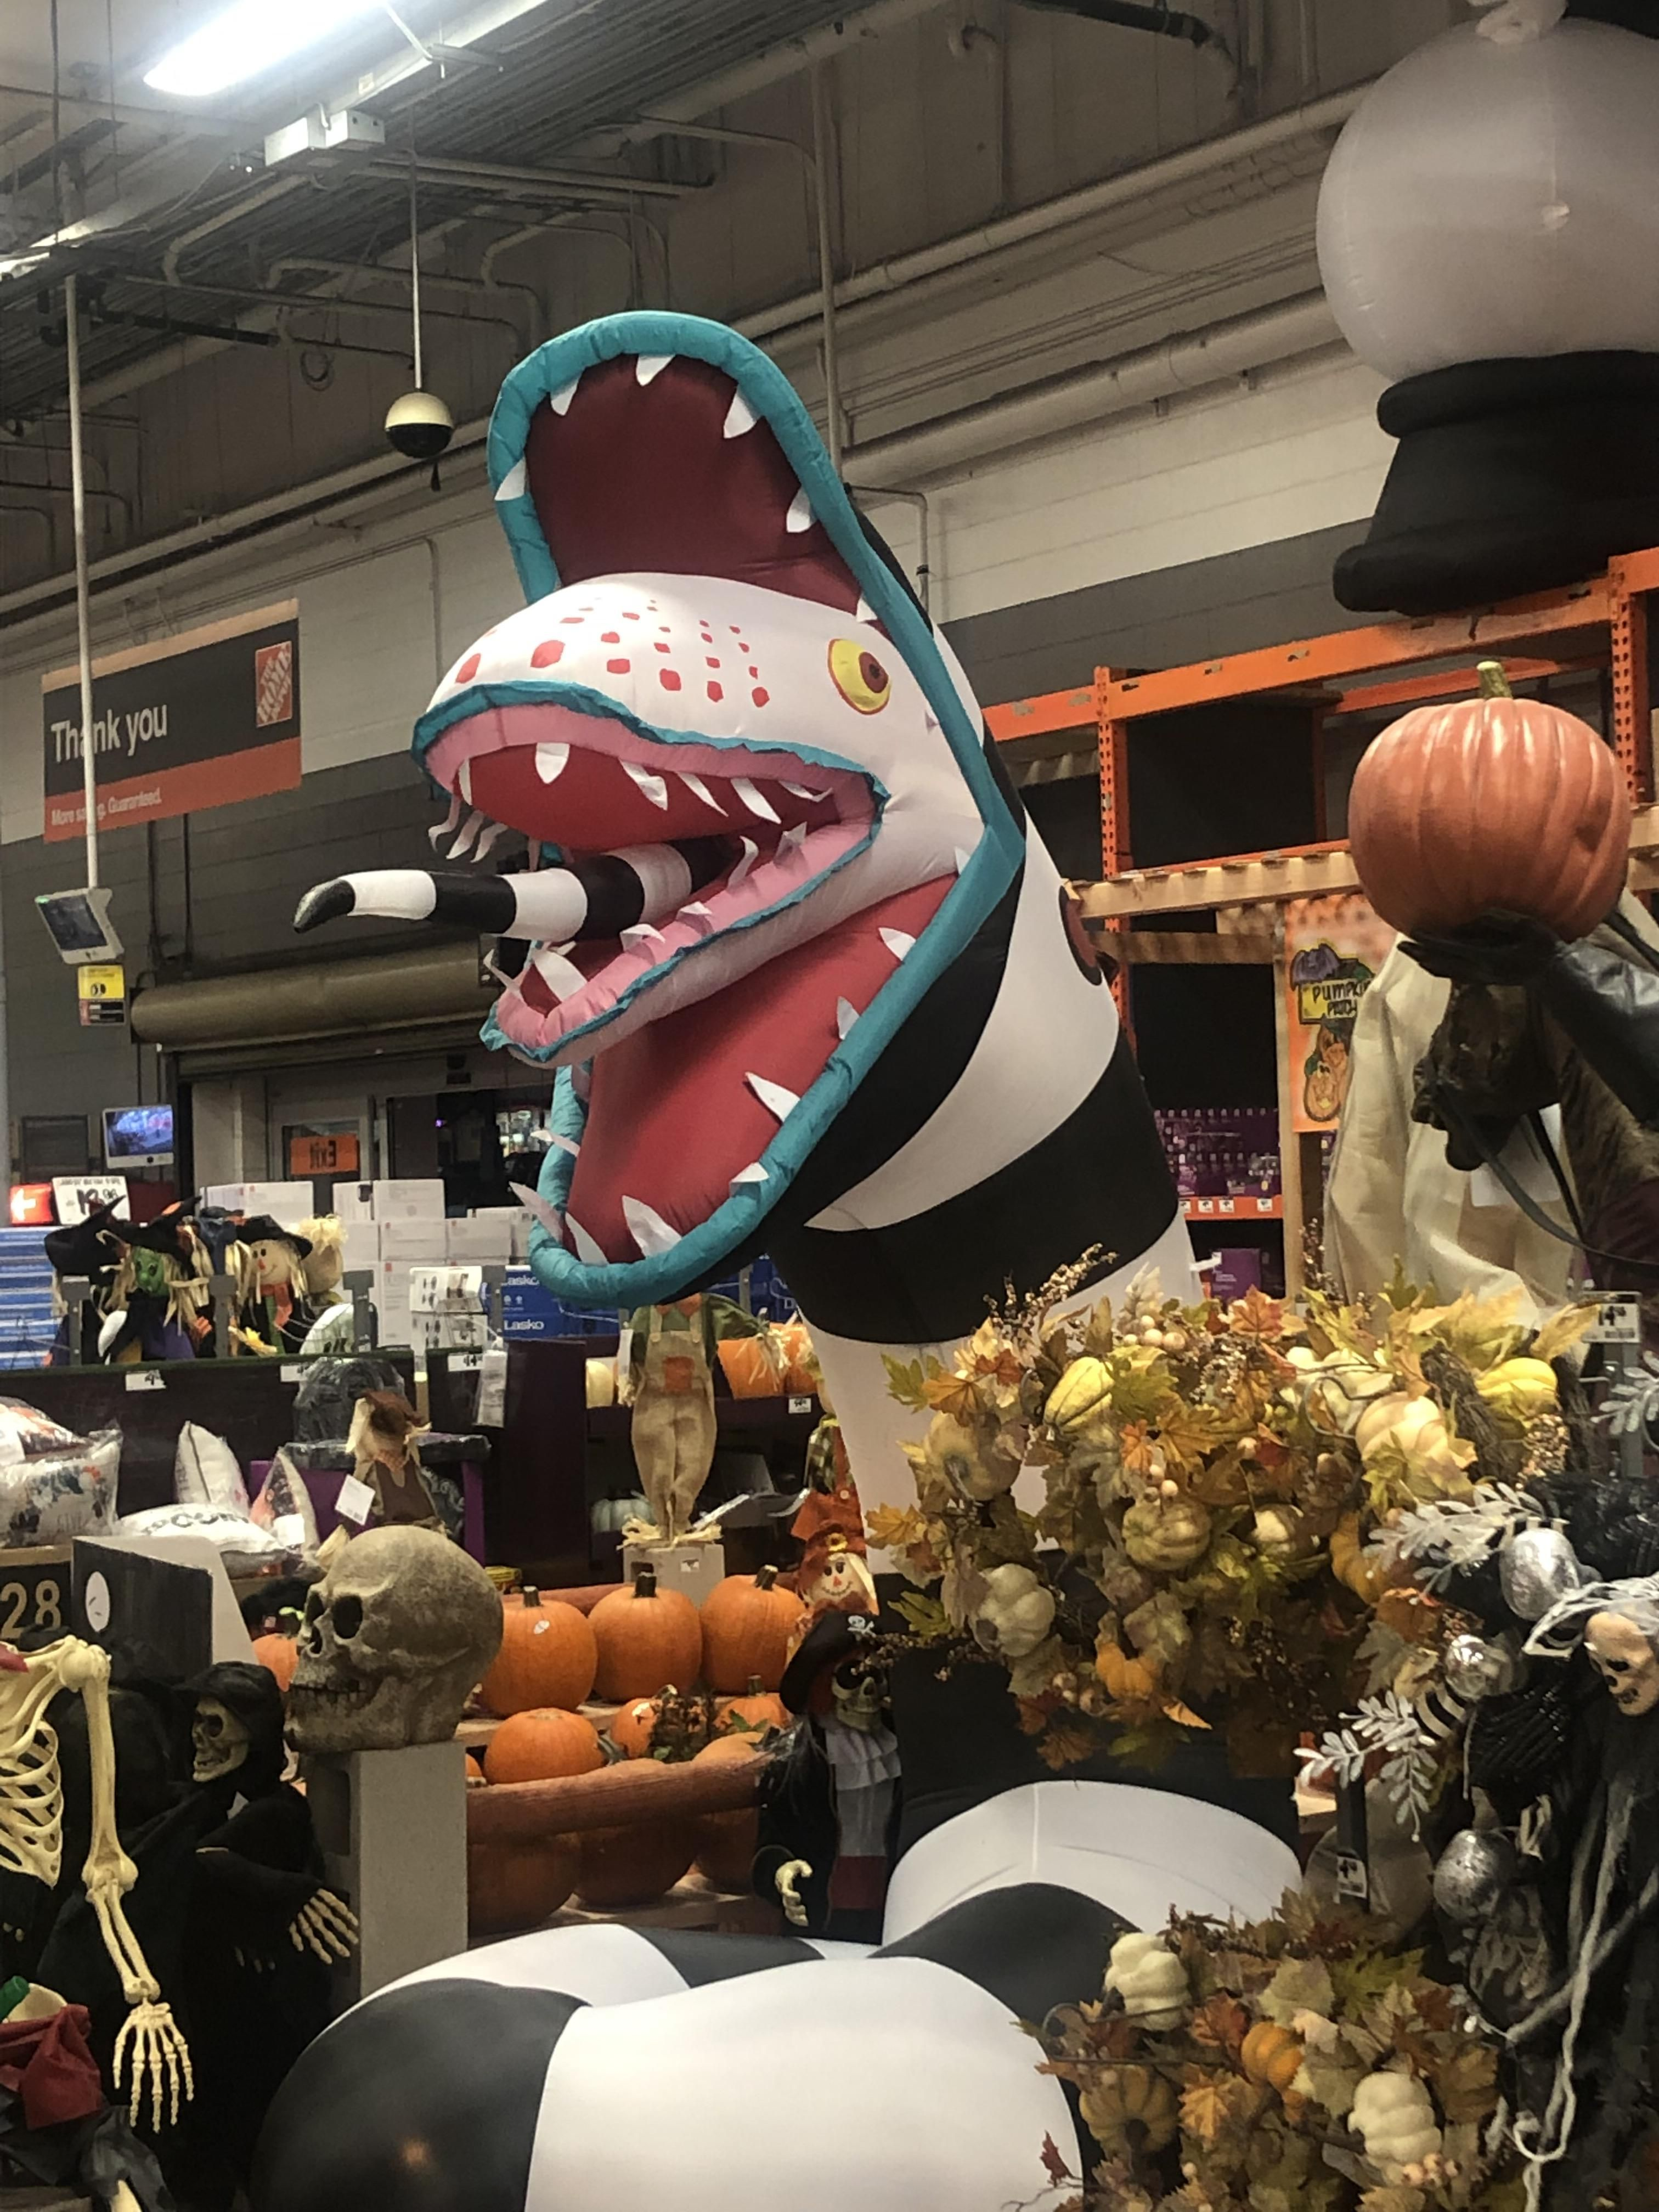 They sell the God damned sand worm from Beetlejuice at Home Depot and I can't tell if life is over or just beginning.